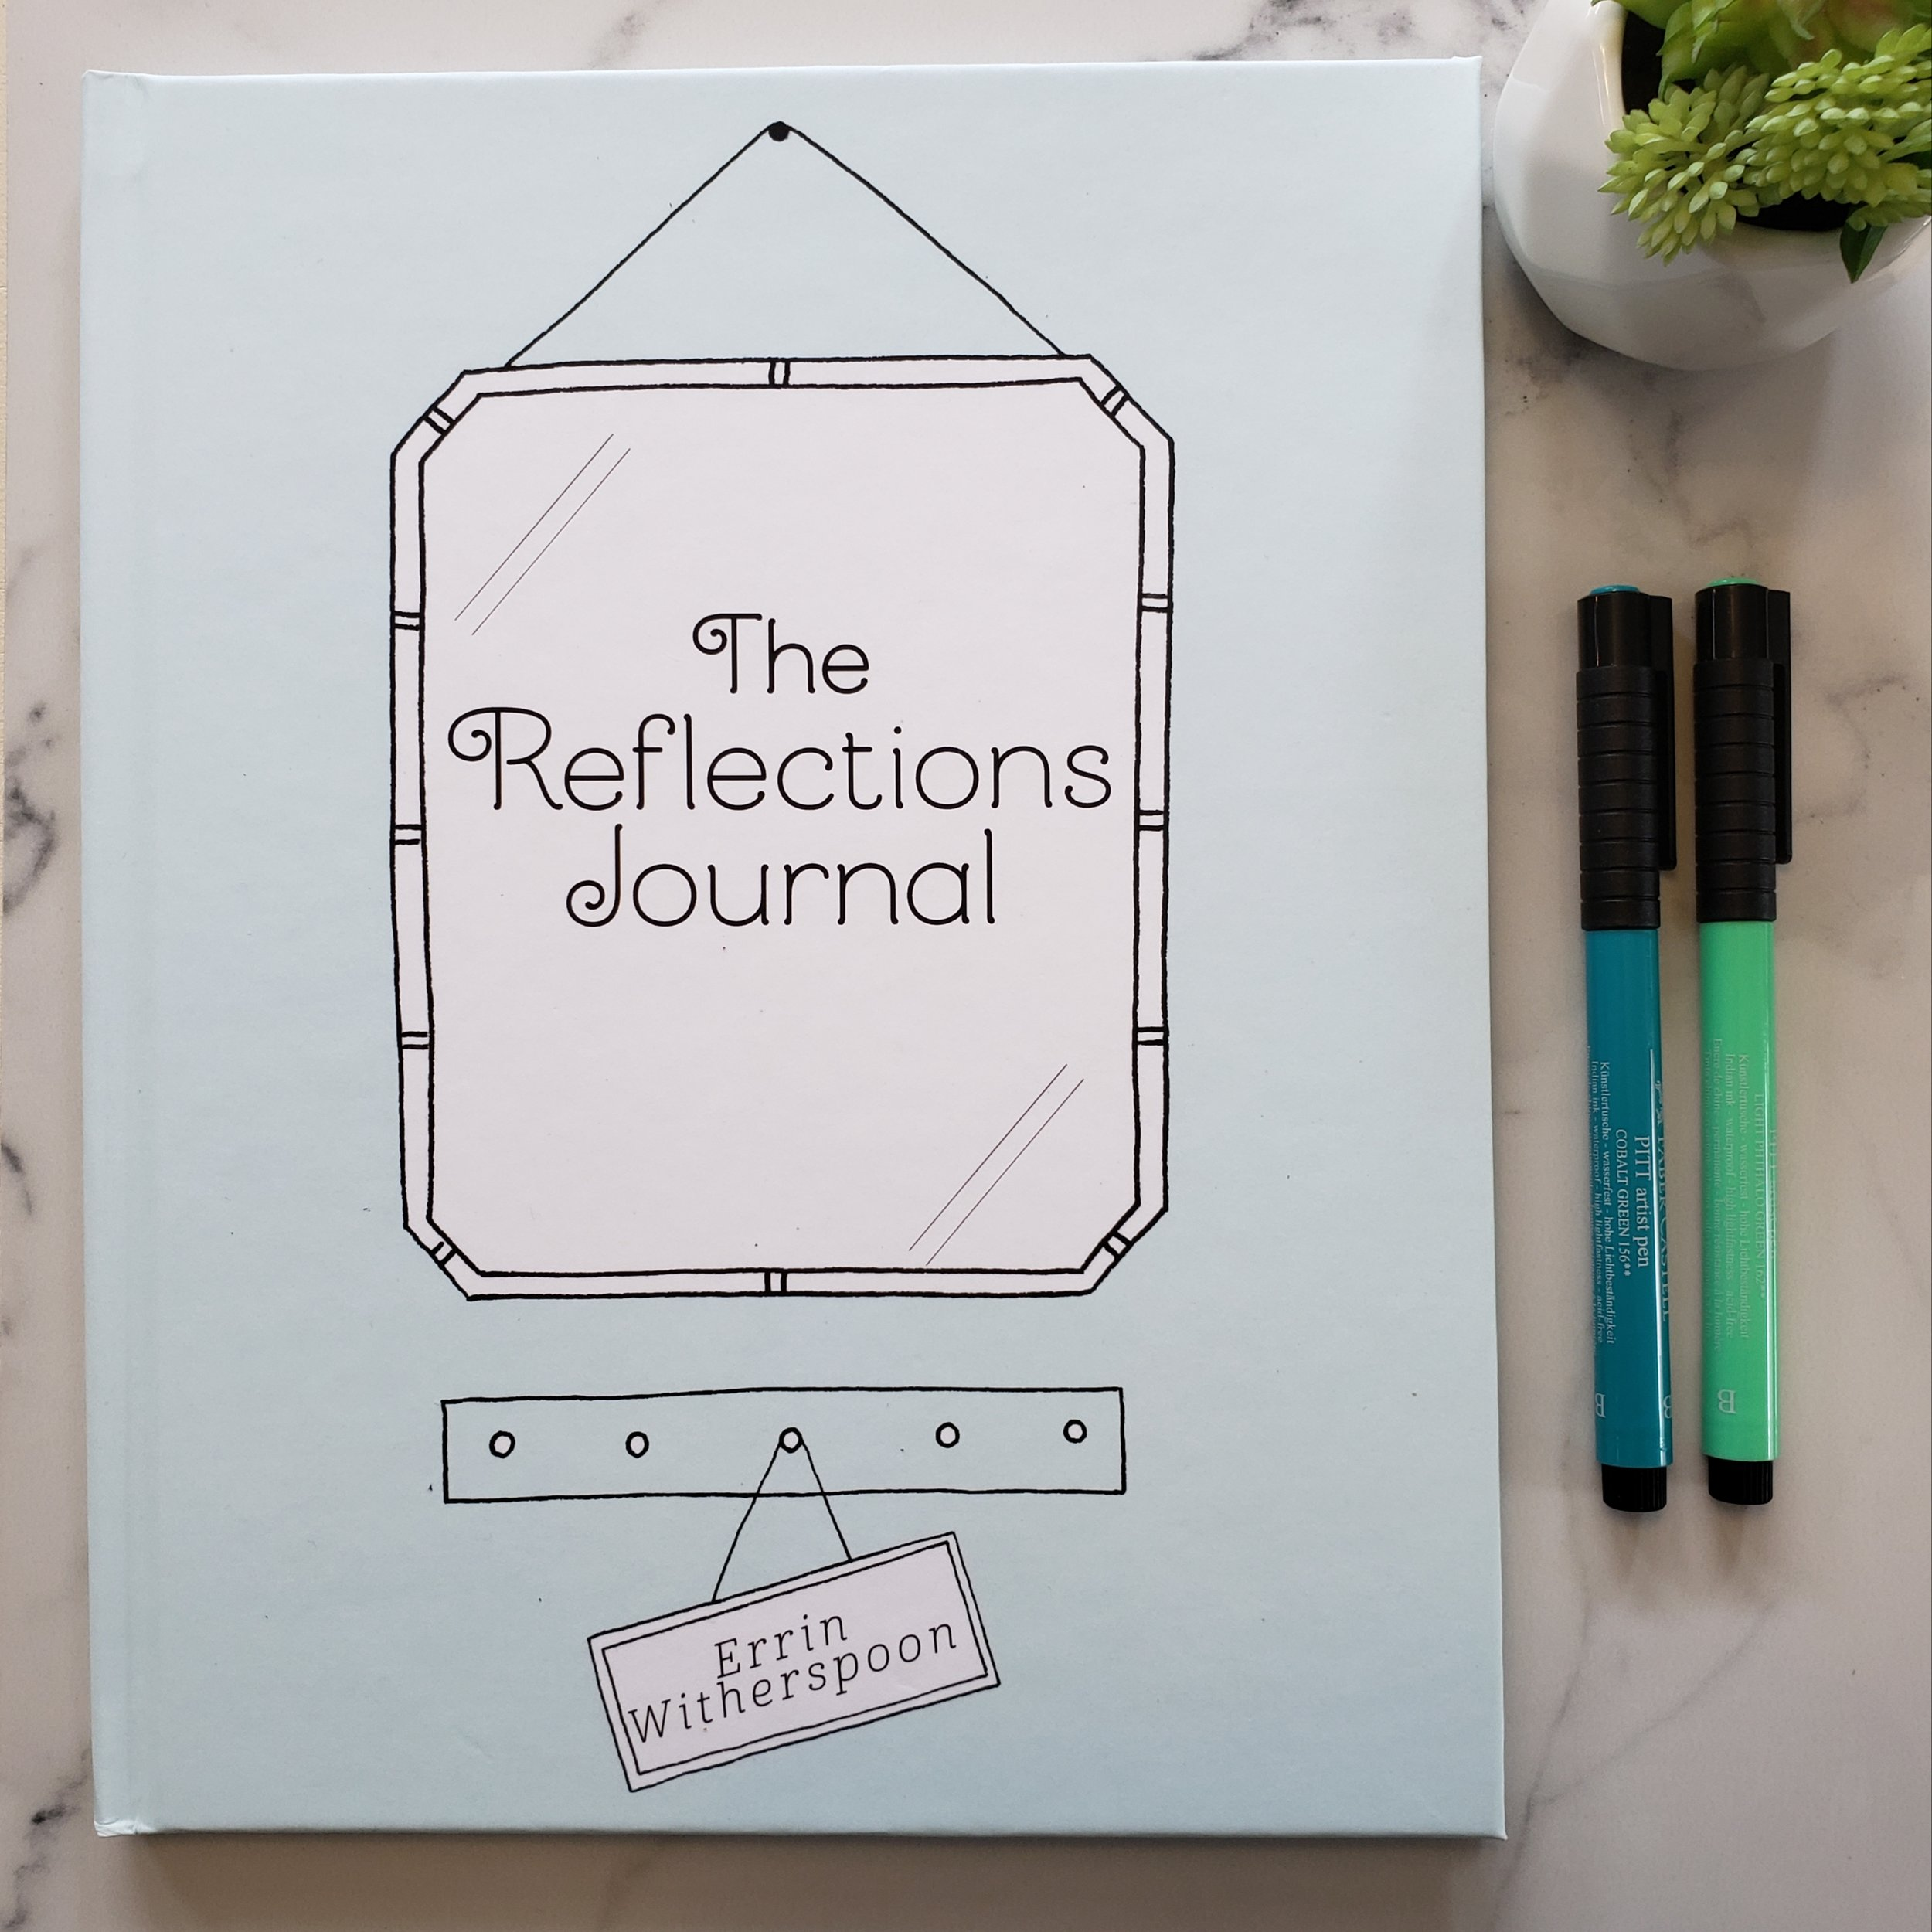 The Reflections Journal - Take a look inside to see what journaling activities you'll get when you useThe Reflections Journal.